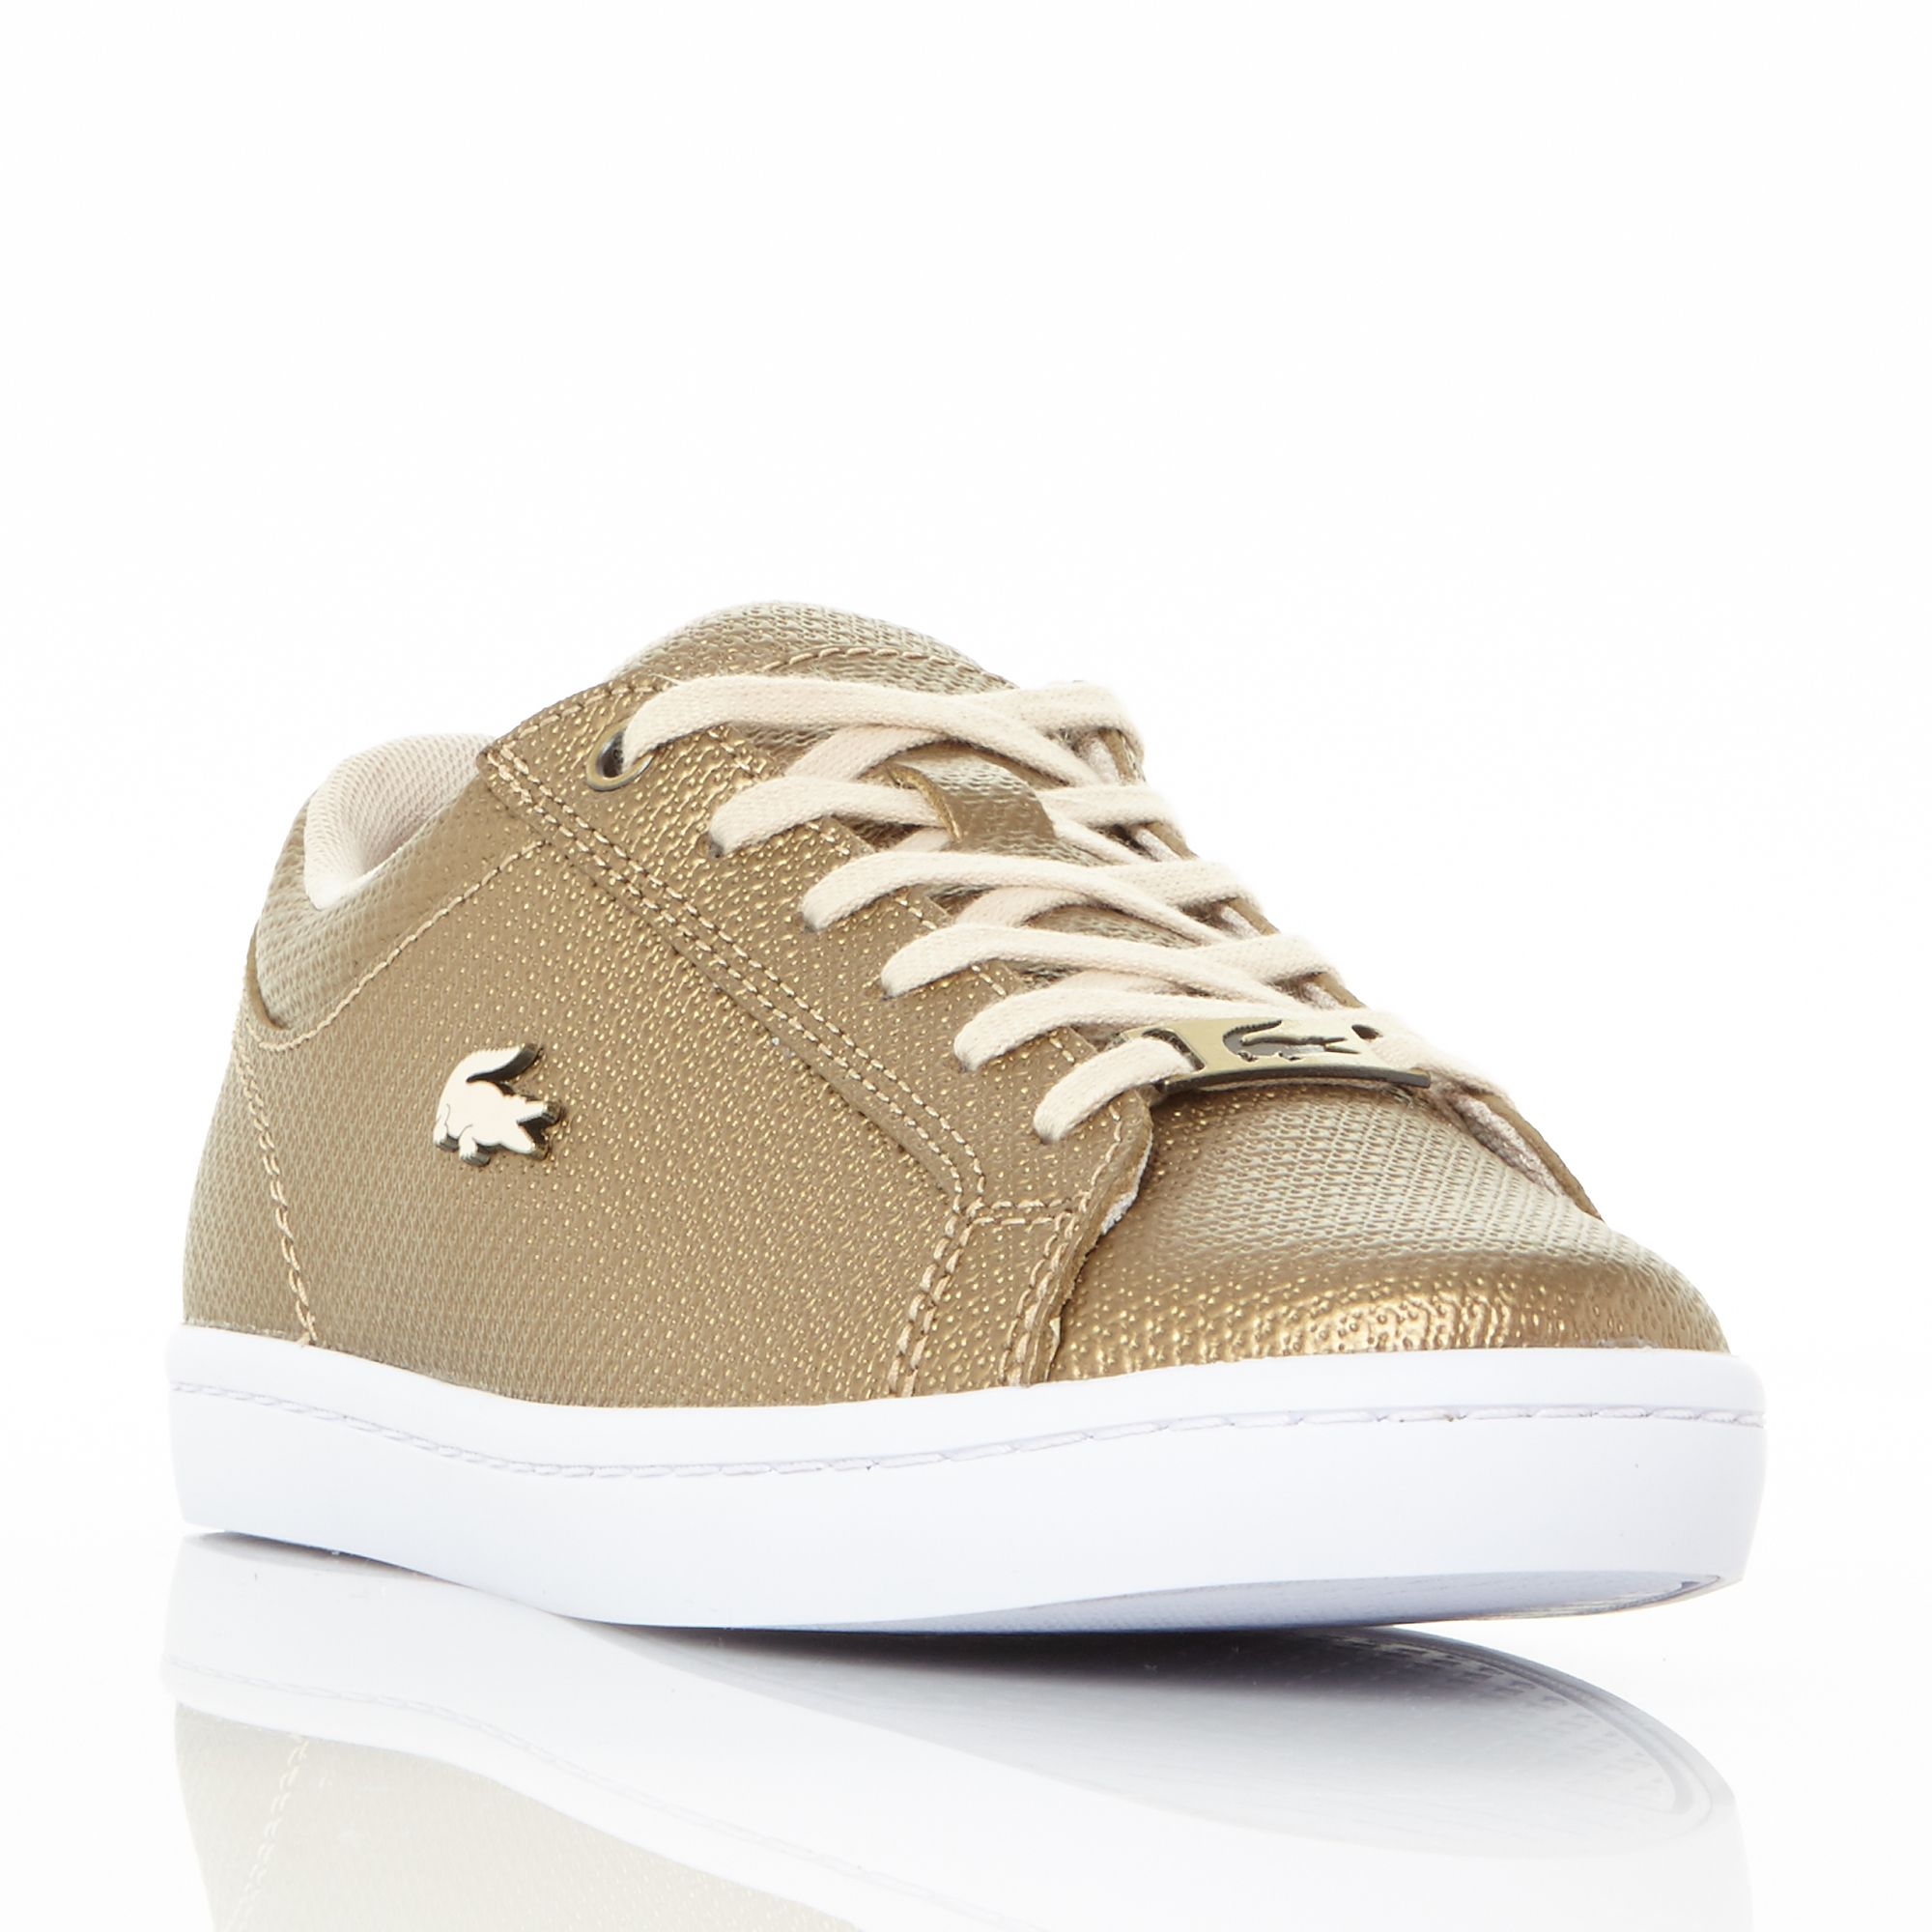 Lacoste Straightset Lace Up Trainers, Gold